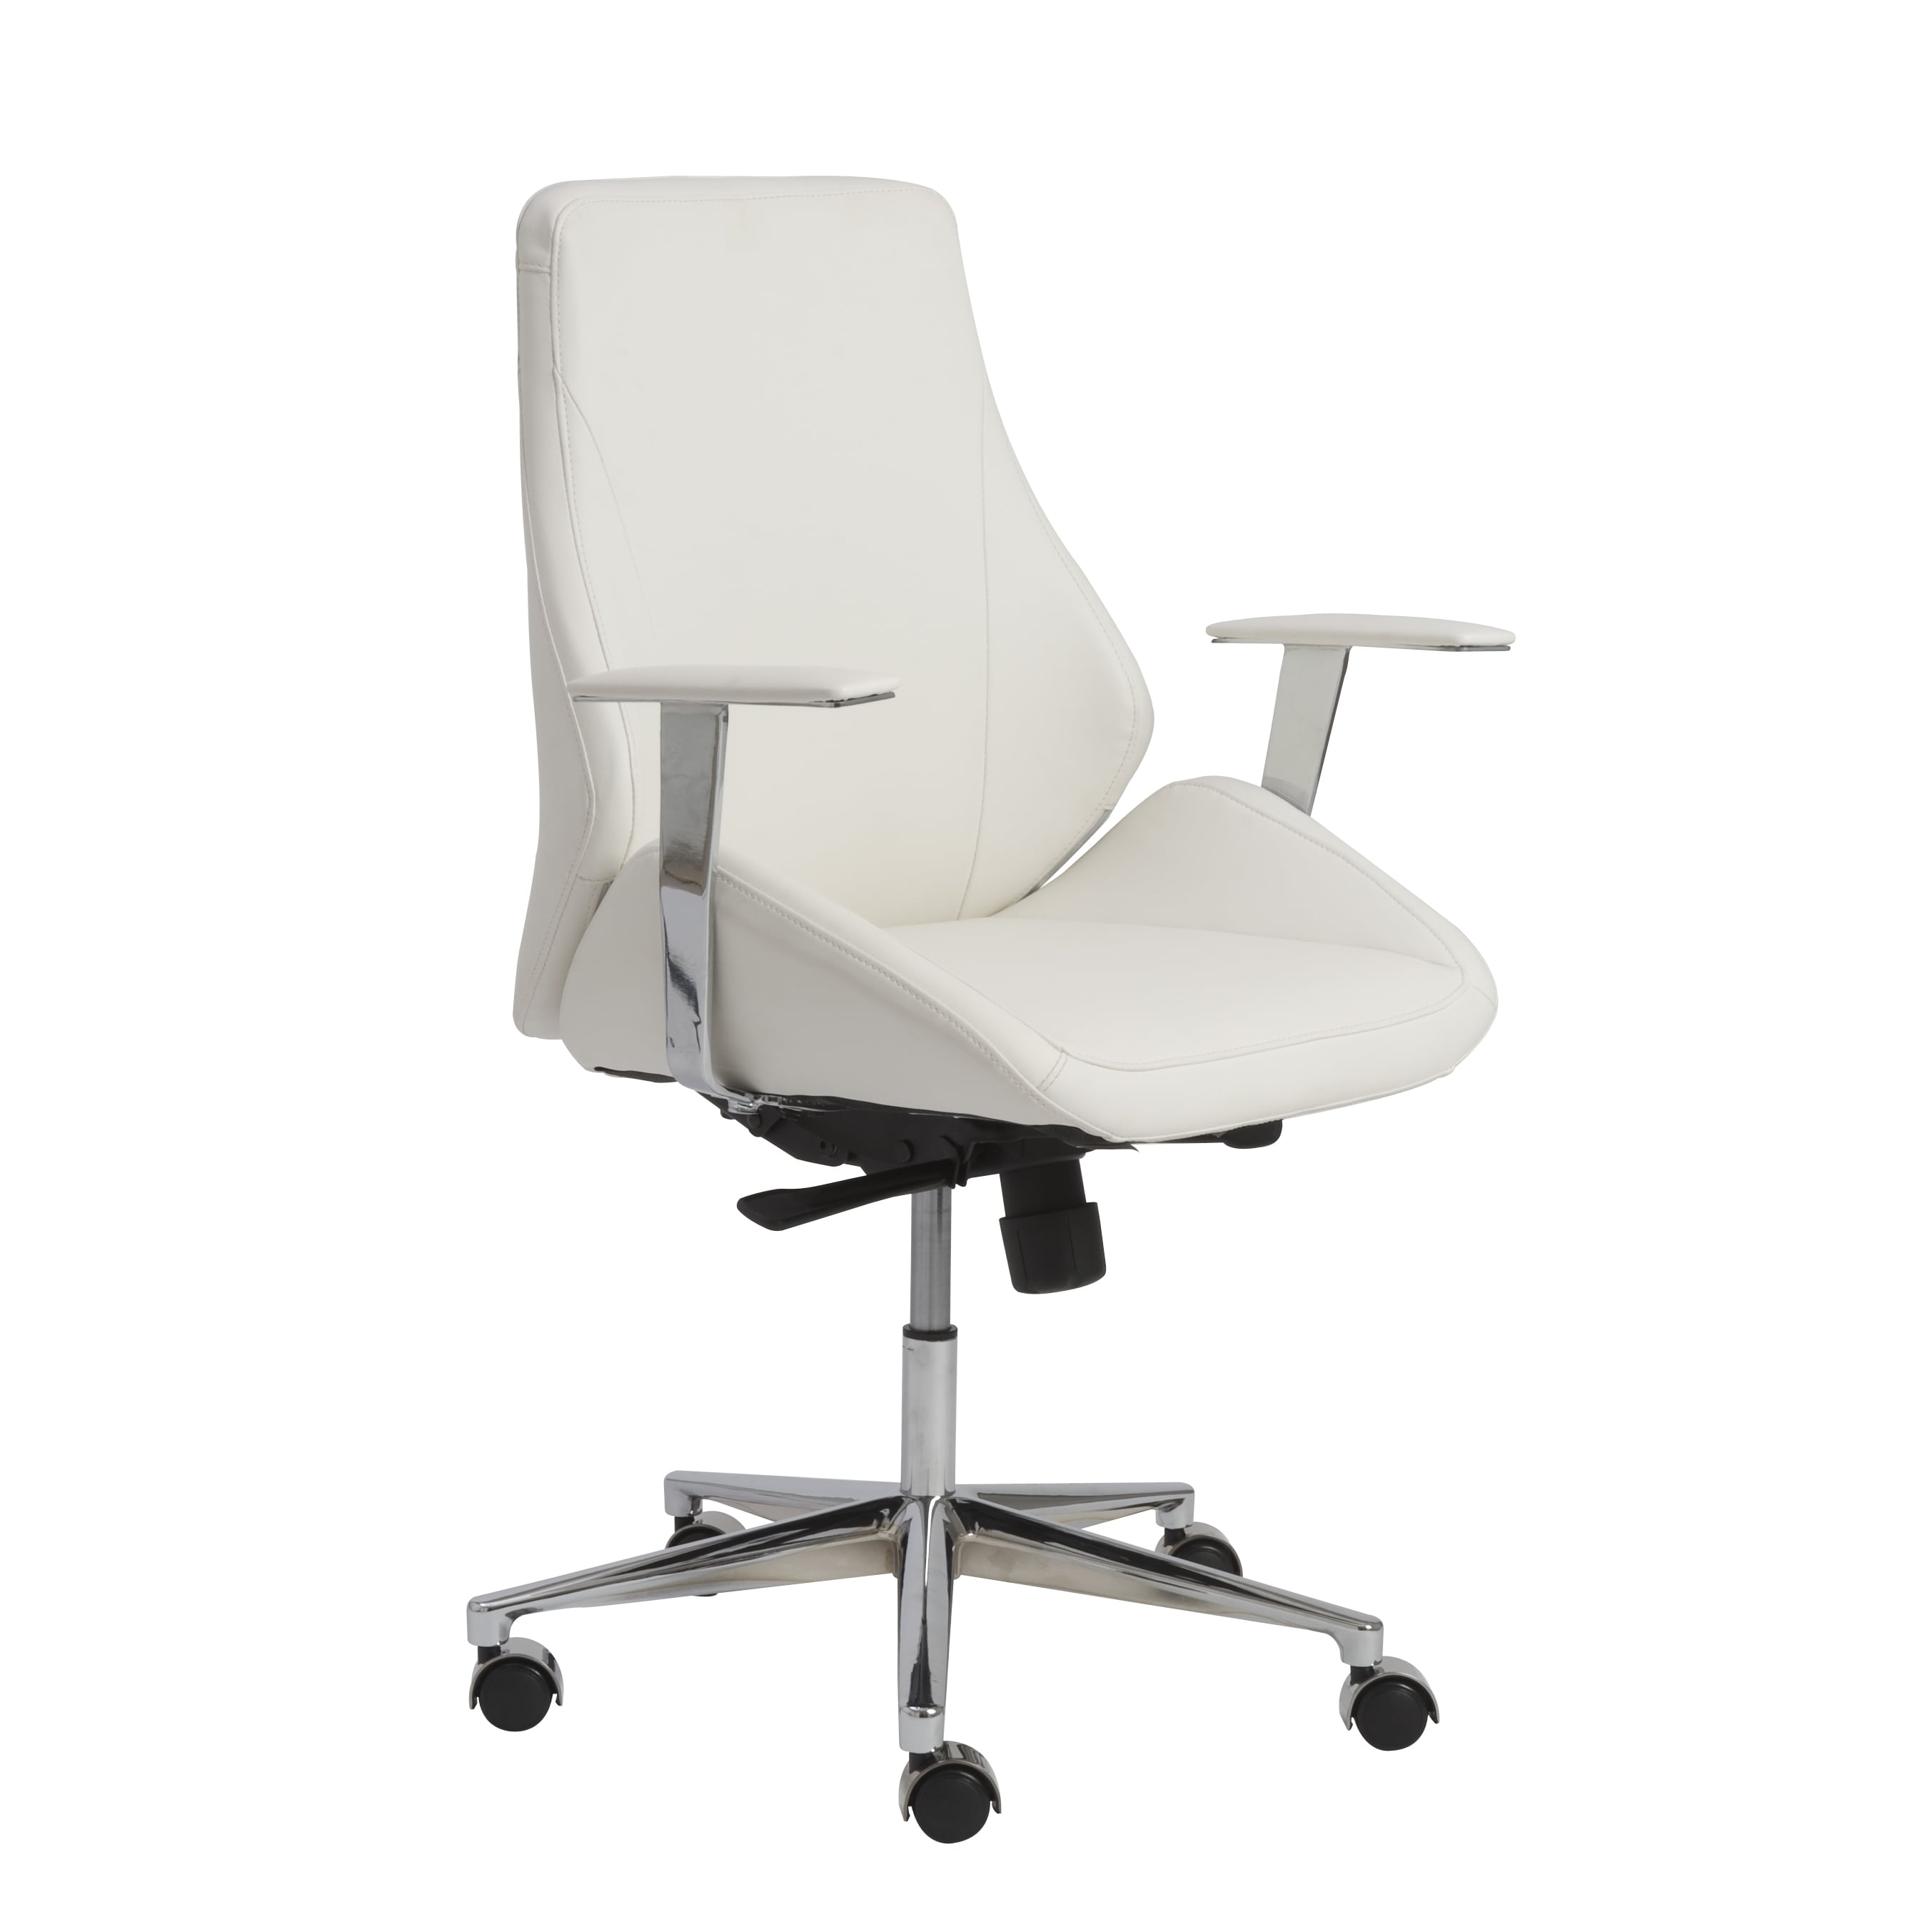 Low Back Office Chair Bergen White Aluminum Low Back Office Chair